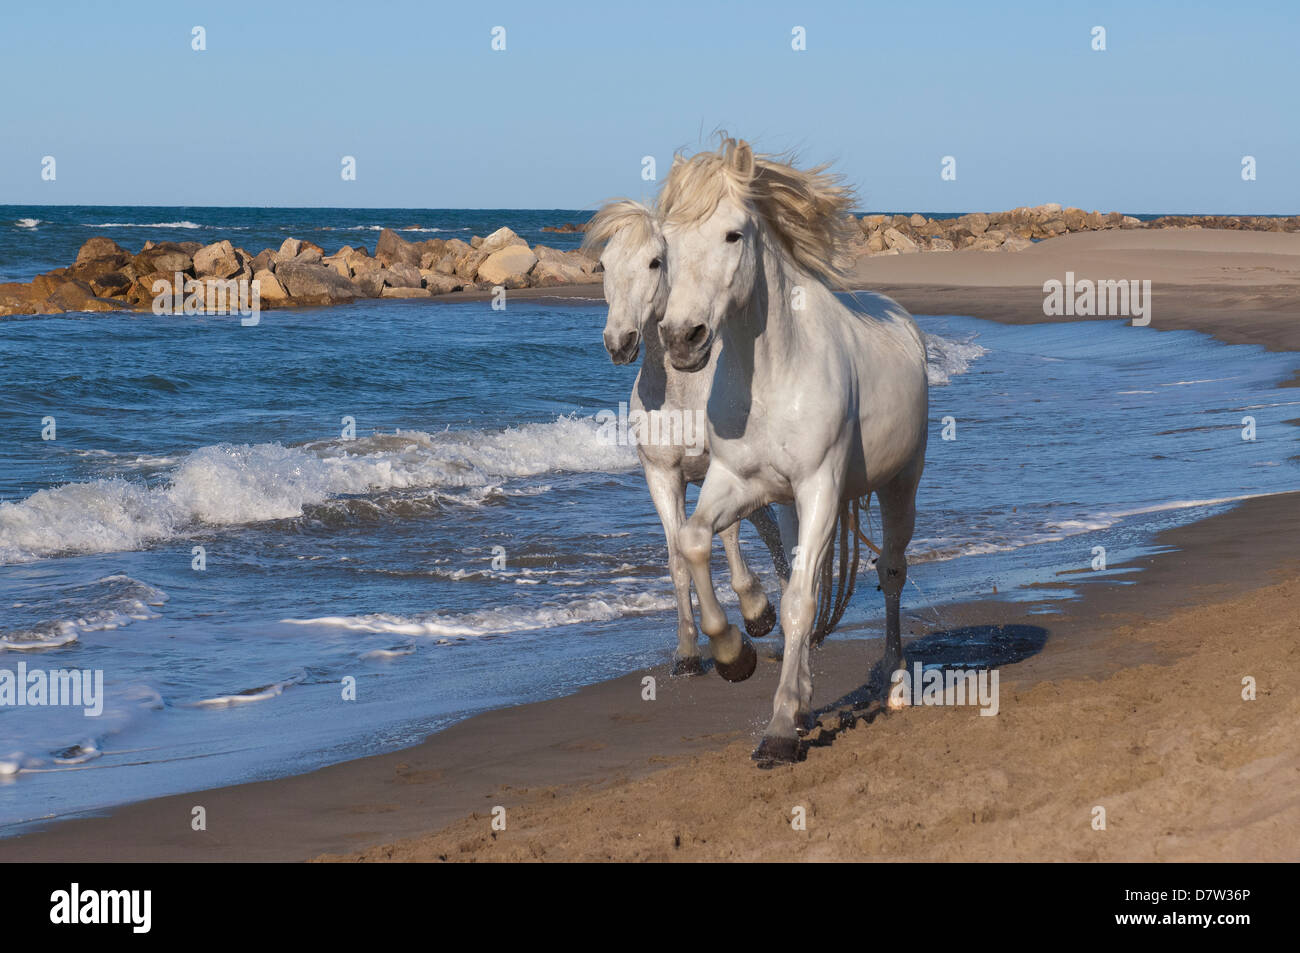 Camargue horses running on the beach, Bouches du Rhone, Provence, France - Stock Image